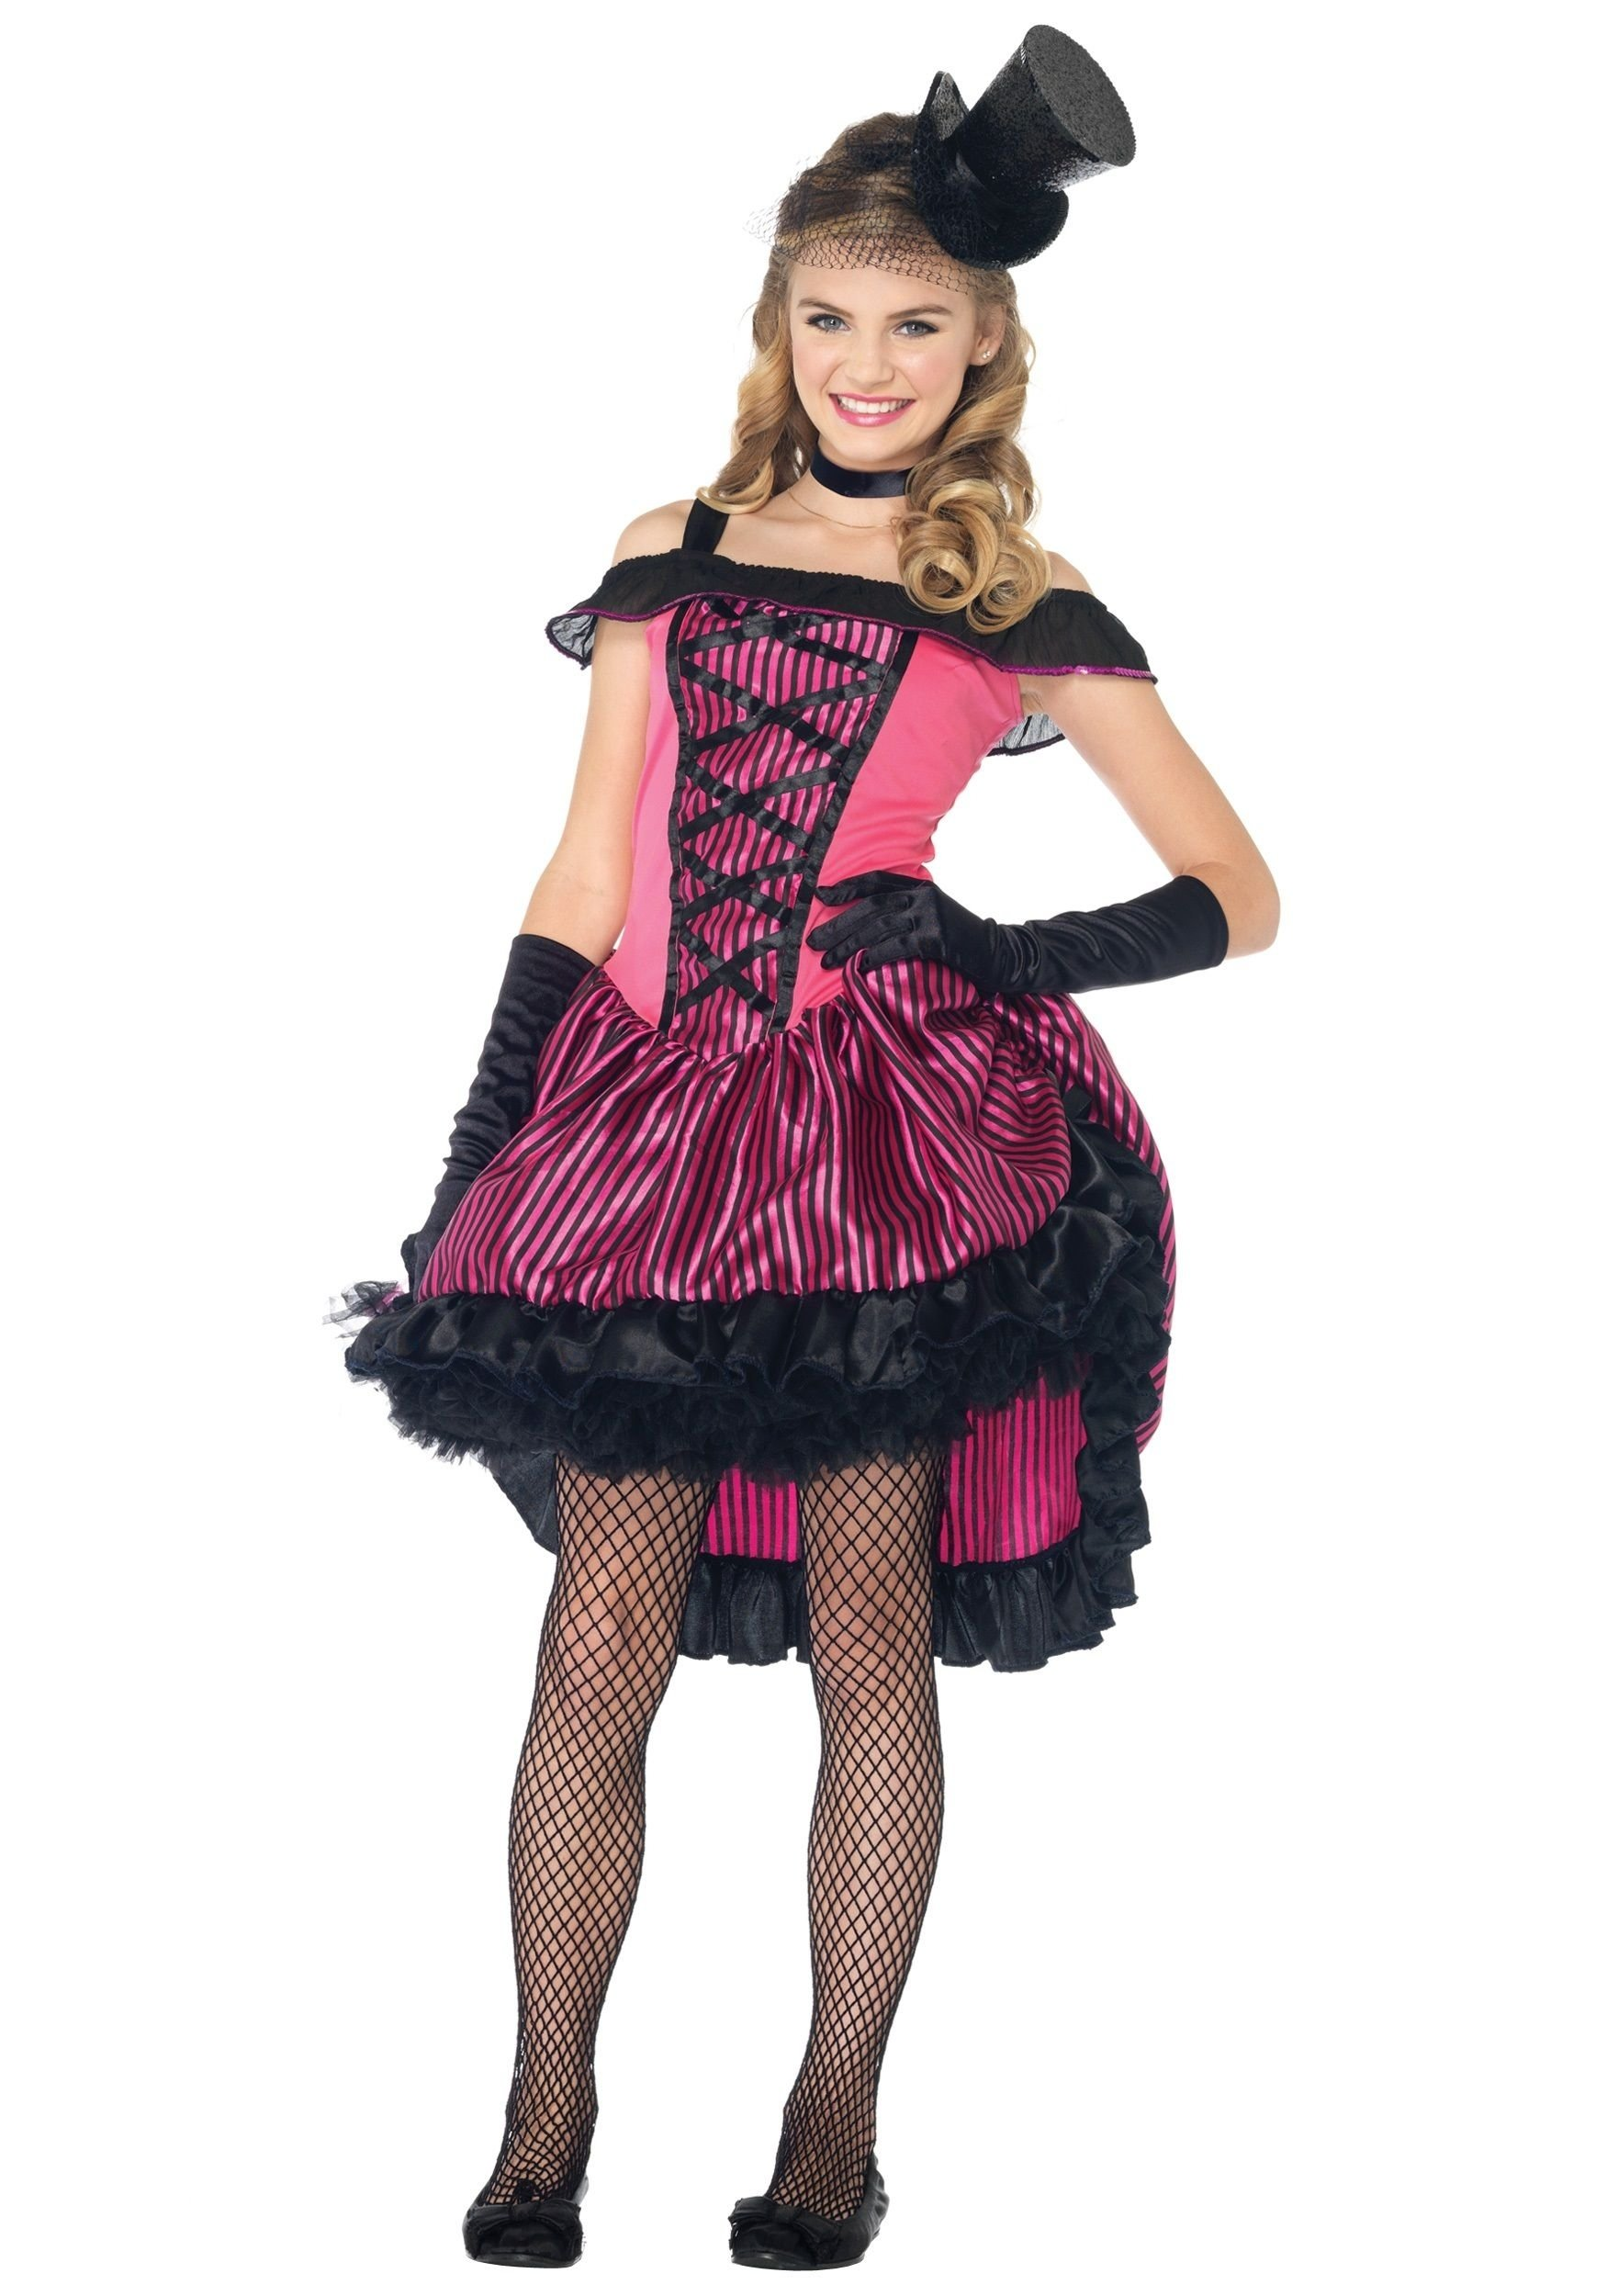 10 Nice Ideas For Halloween Costumes For Girls teen halloween girls costumes girls halloween costumes 2014  sc 1 st  Unique Ideas 2018 & 10 Nice Ideas For Halloween Costumes For Girls